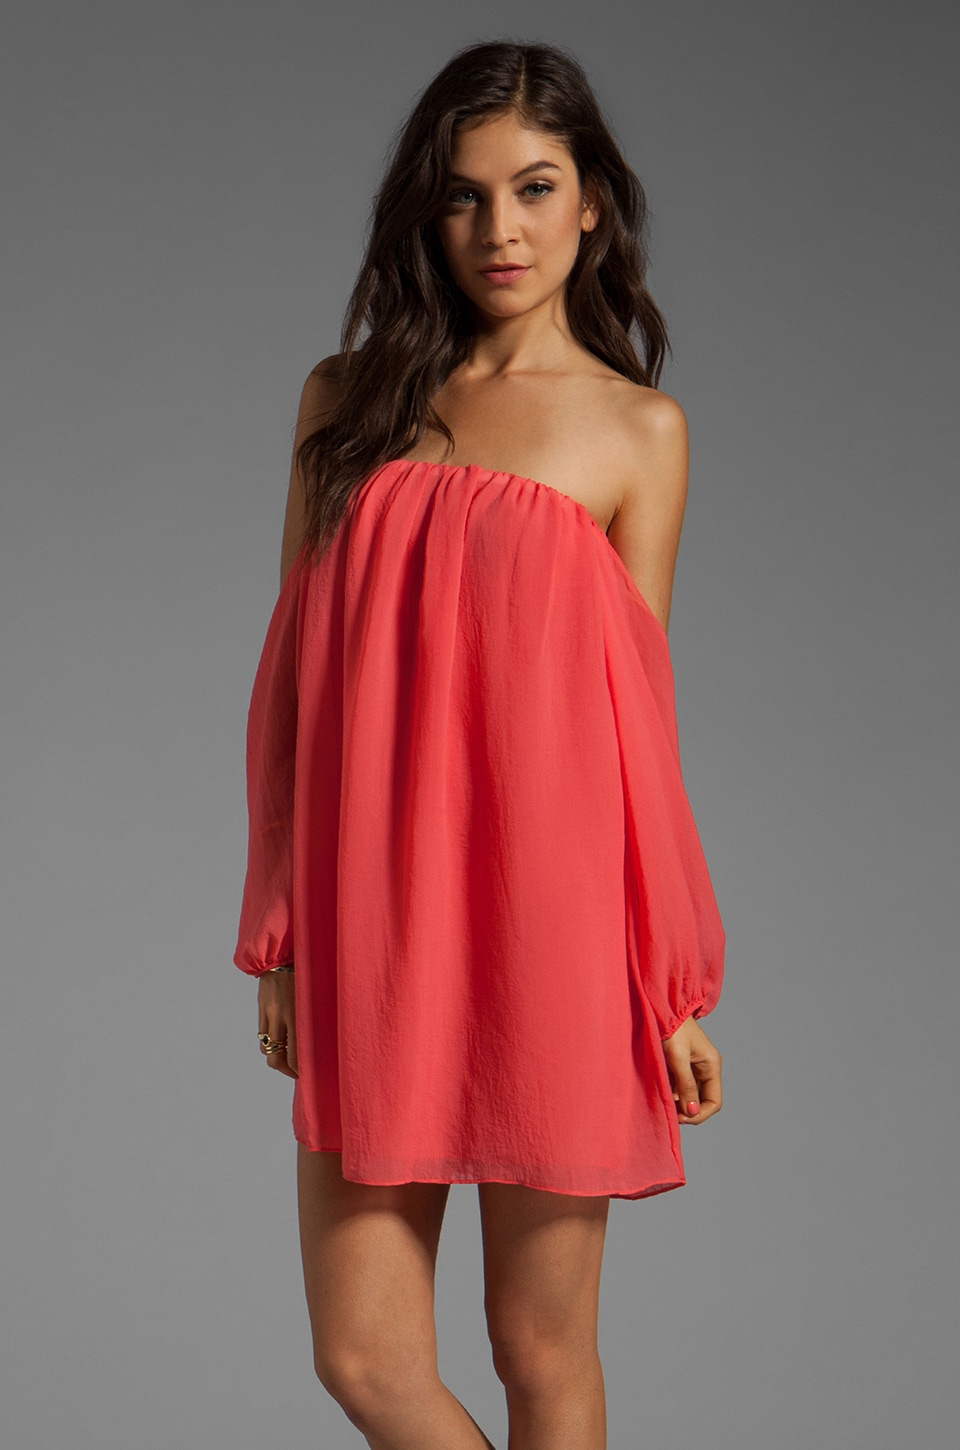 T-Bags LosAngeles Cut Out Dress in Coral